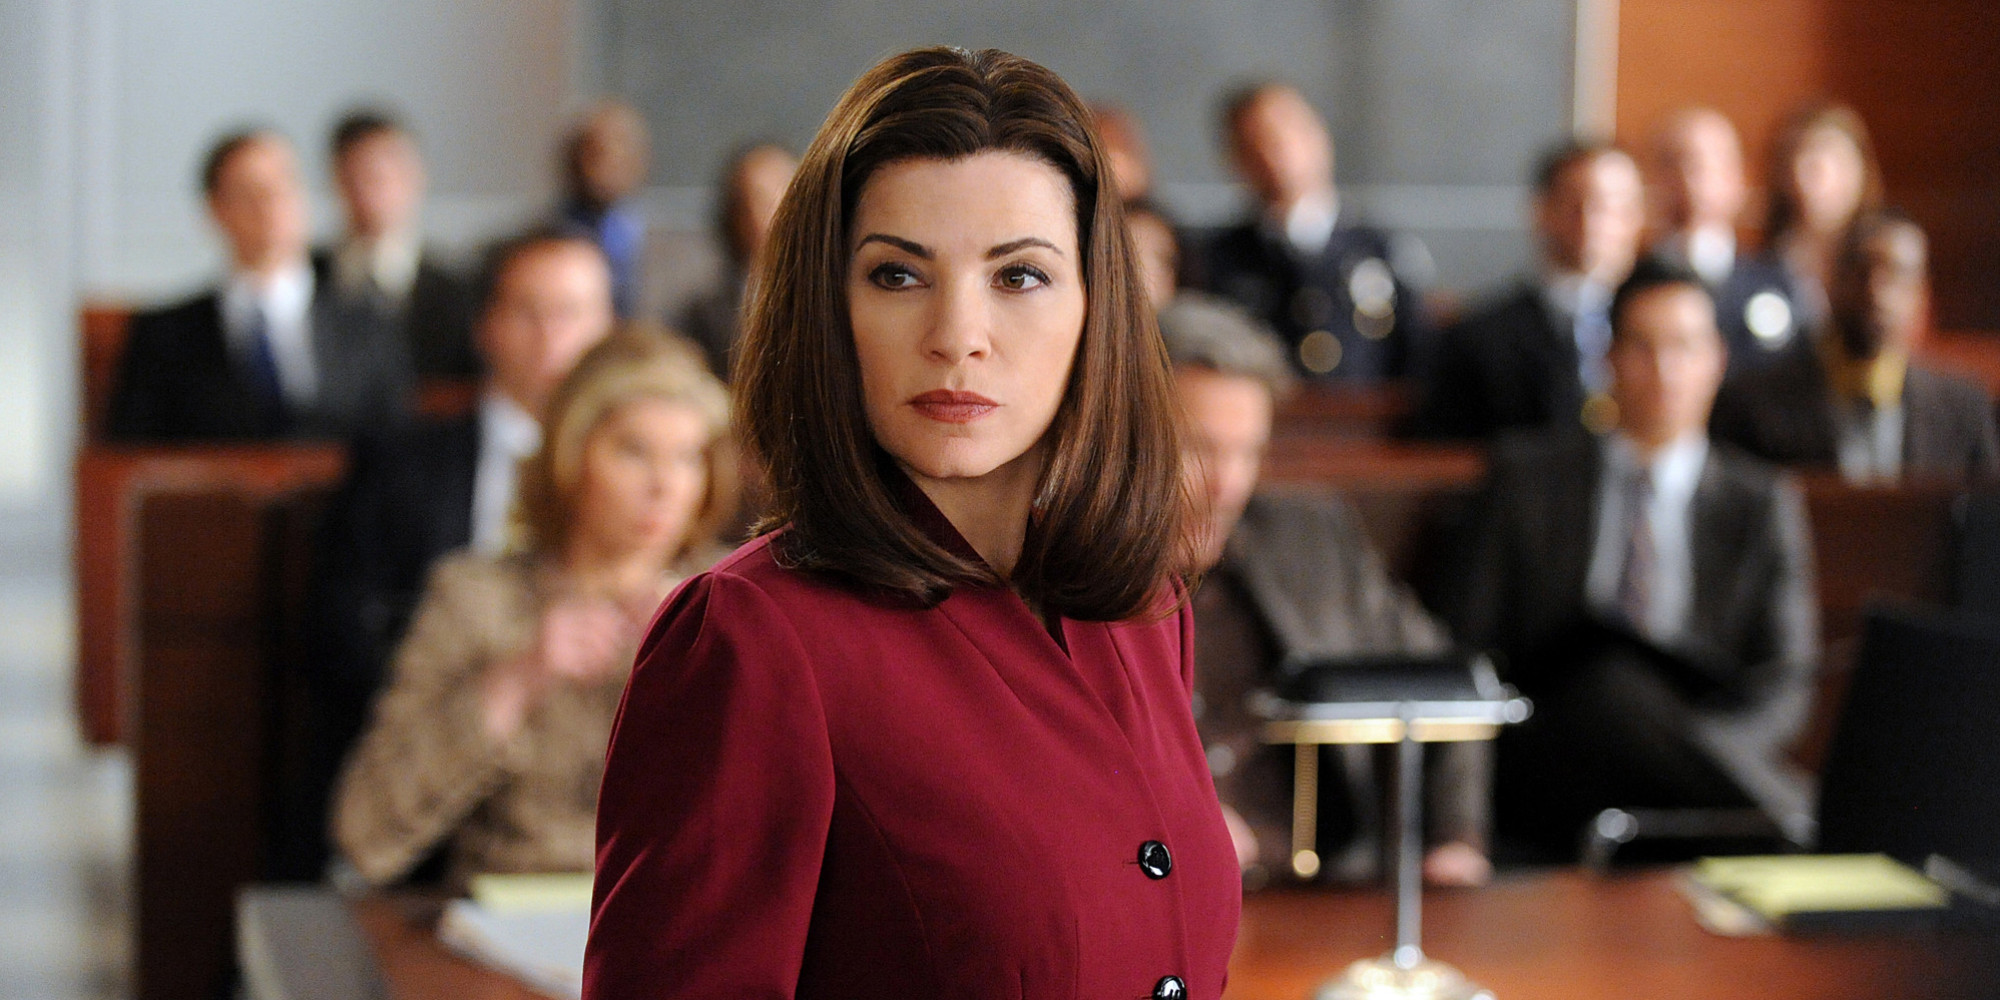 the good wife recap: is she wearing panties? and other scandals in